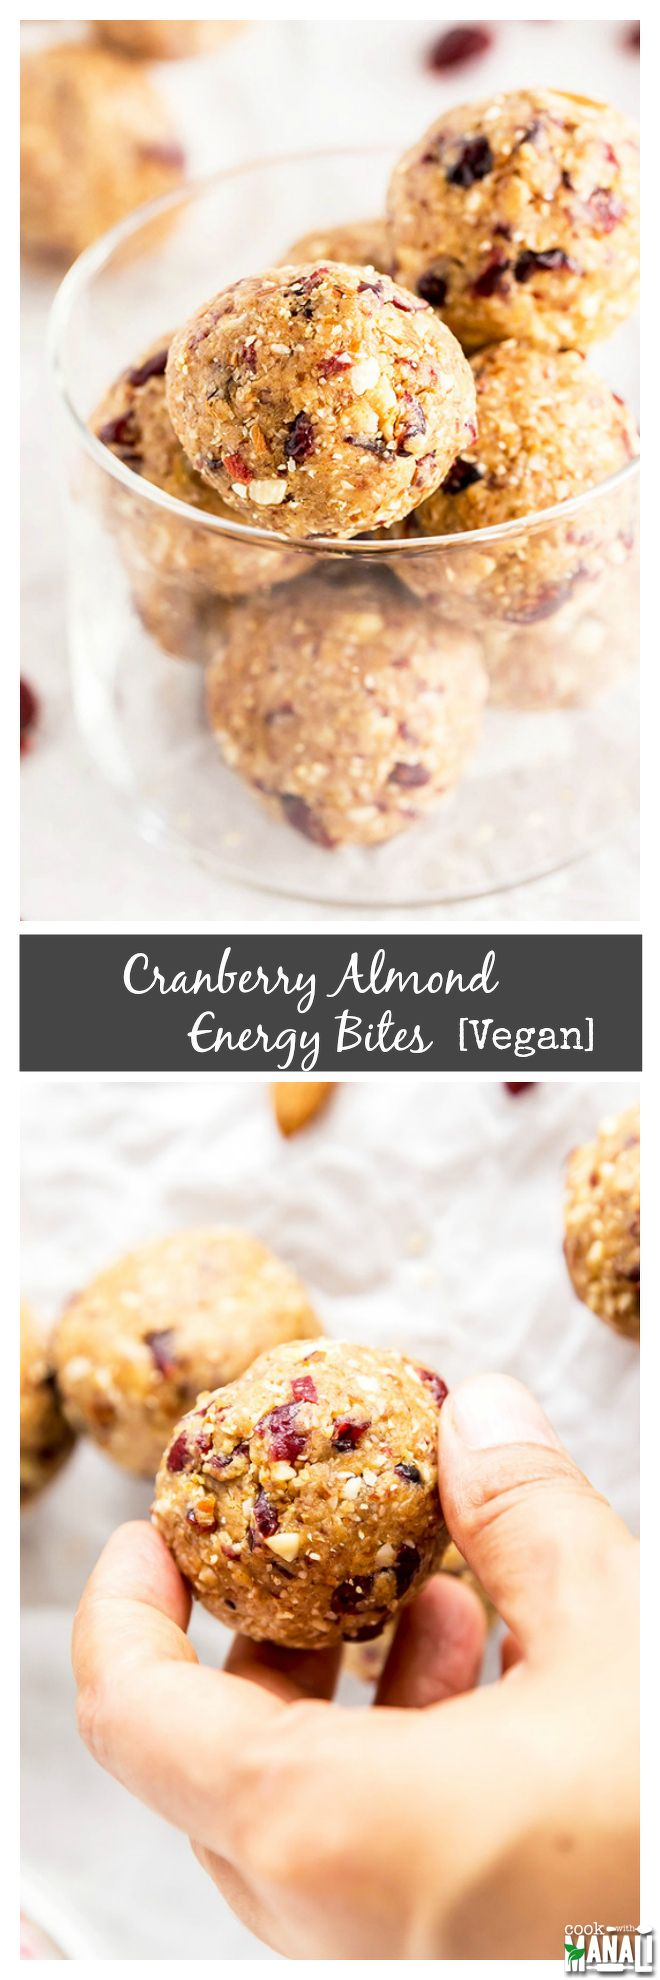 Vegan No-Bake Cranberry Almond Energy Bites are the perfect way to satisfy your sweet cravings! Find the recipe on www.cookwithmanali.com